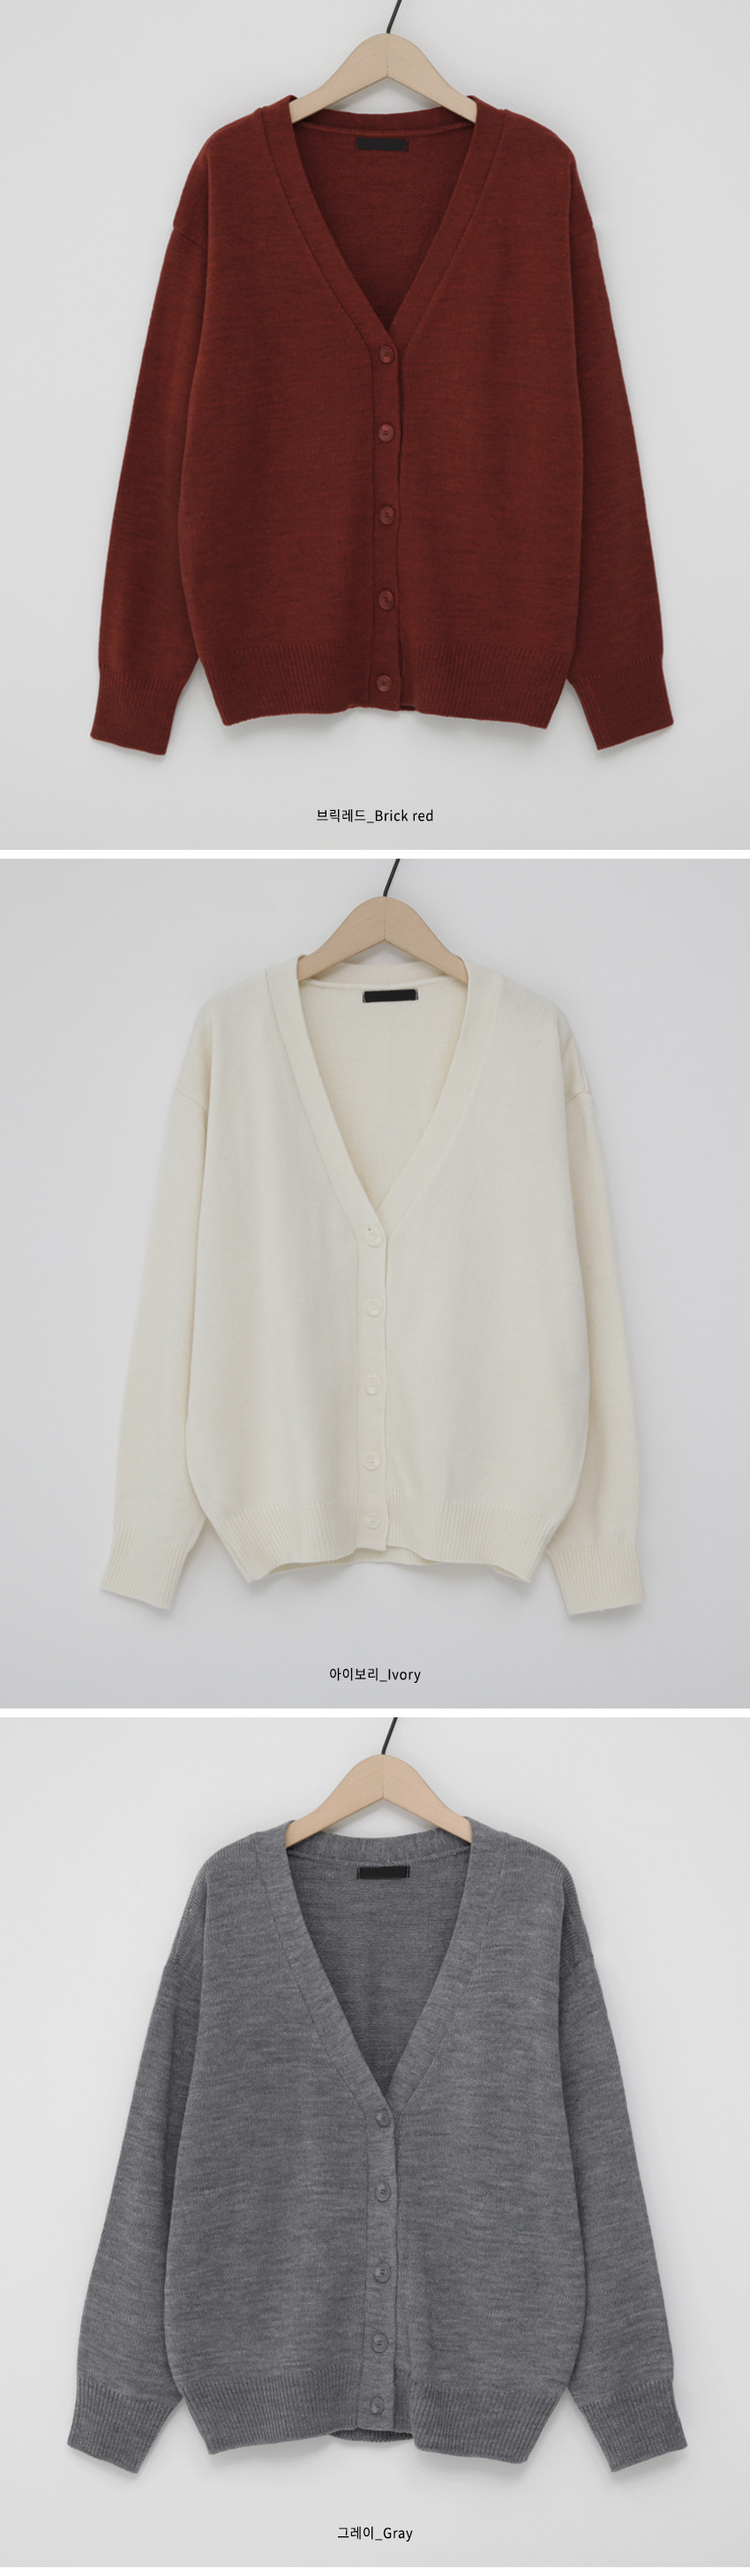 Moss Basic Knit Cardigan